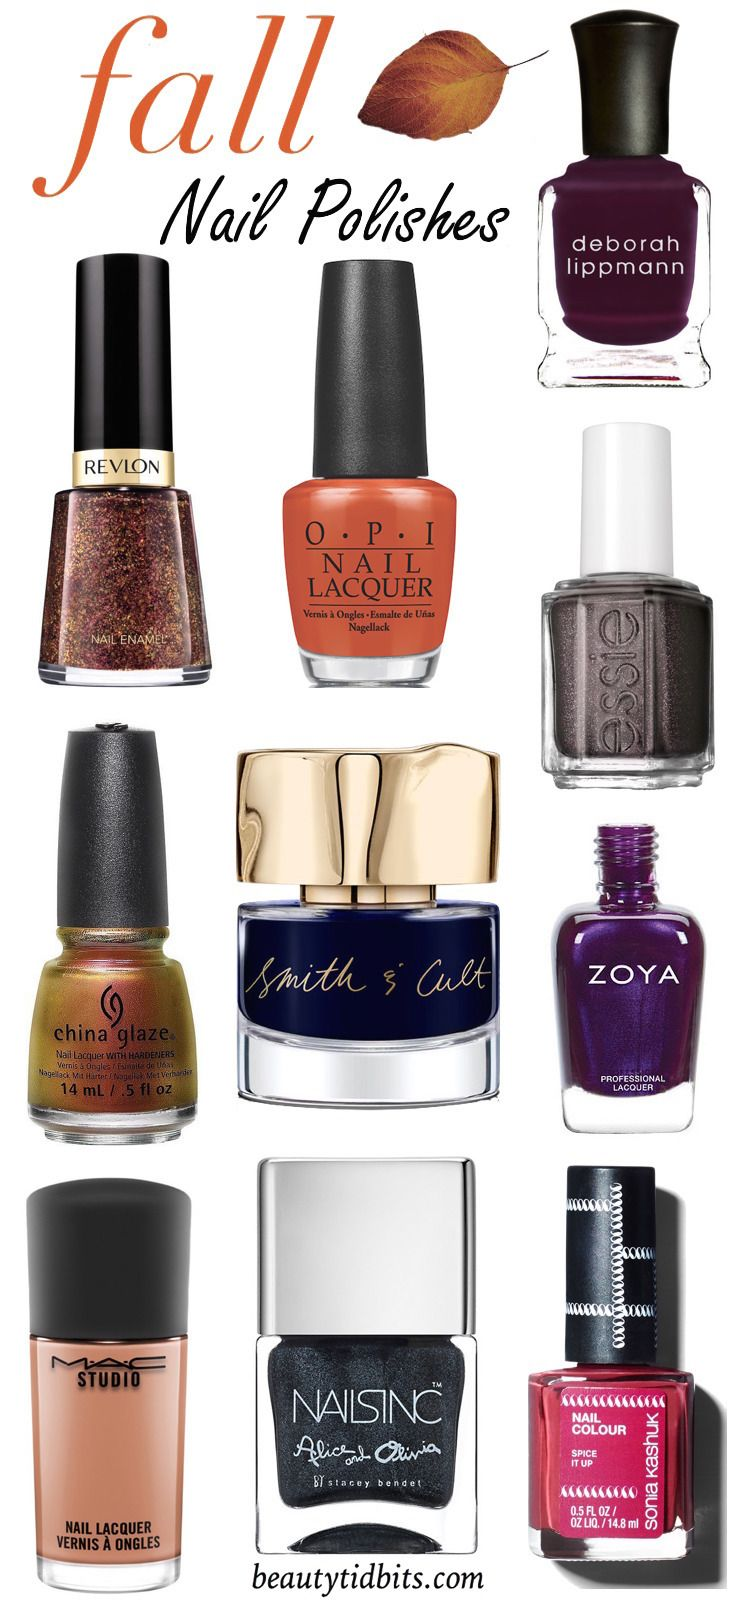 Step up your fall manicure game with these pretty polishes perfectly primed to the changing season!